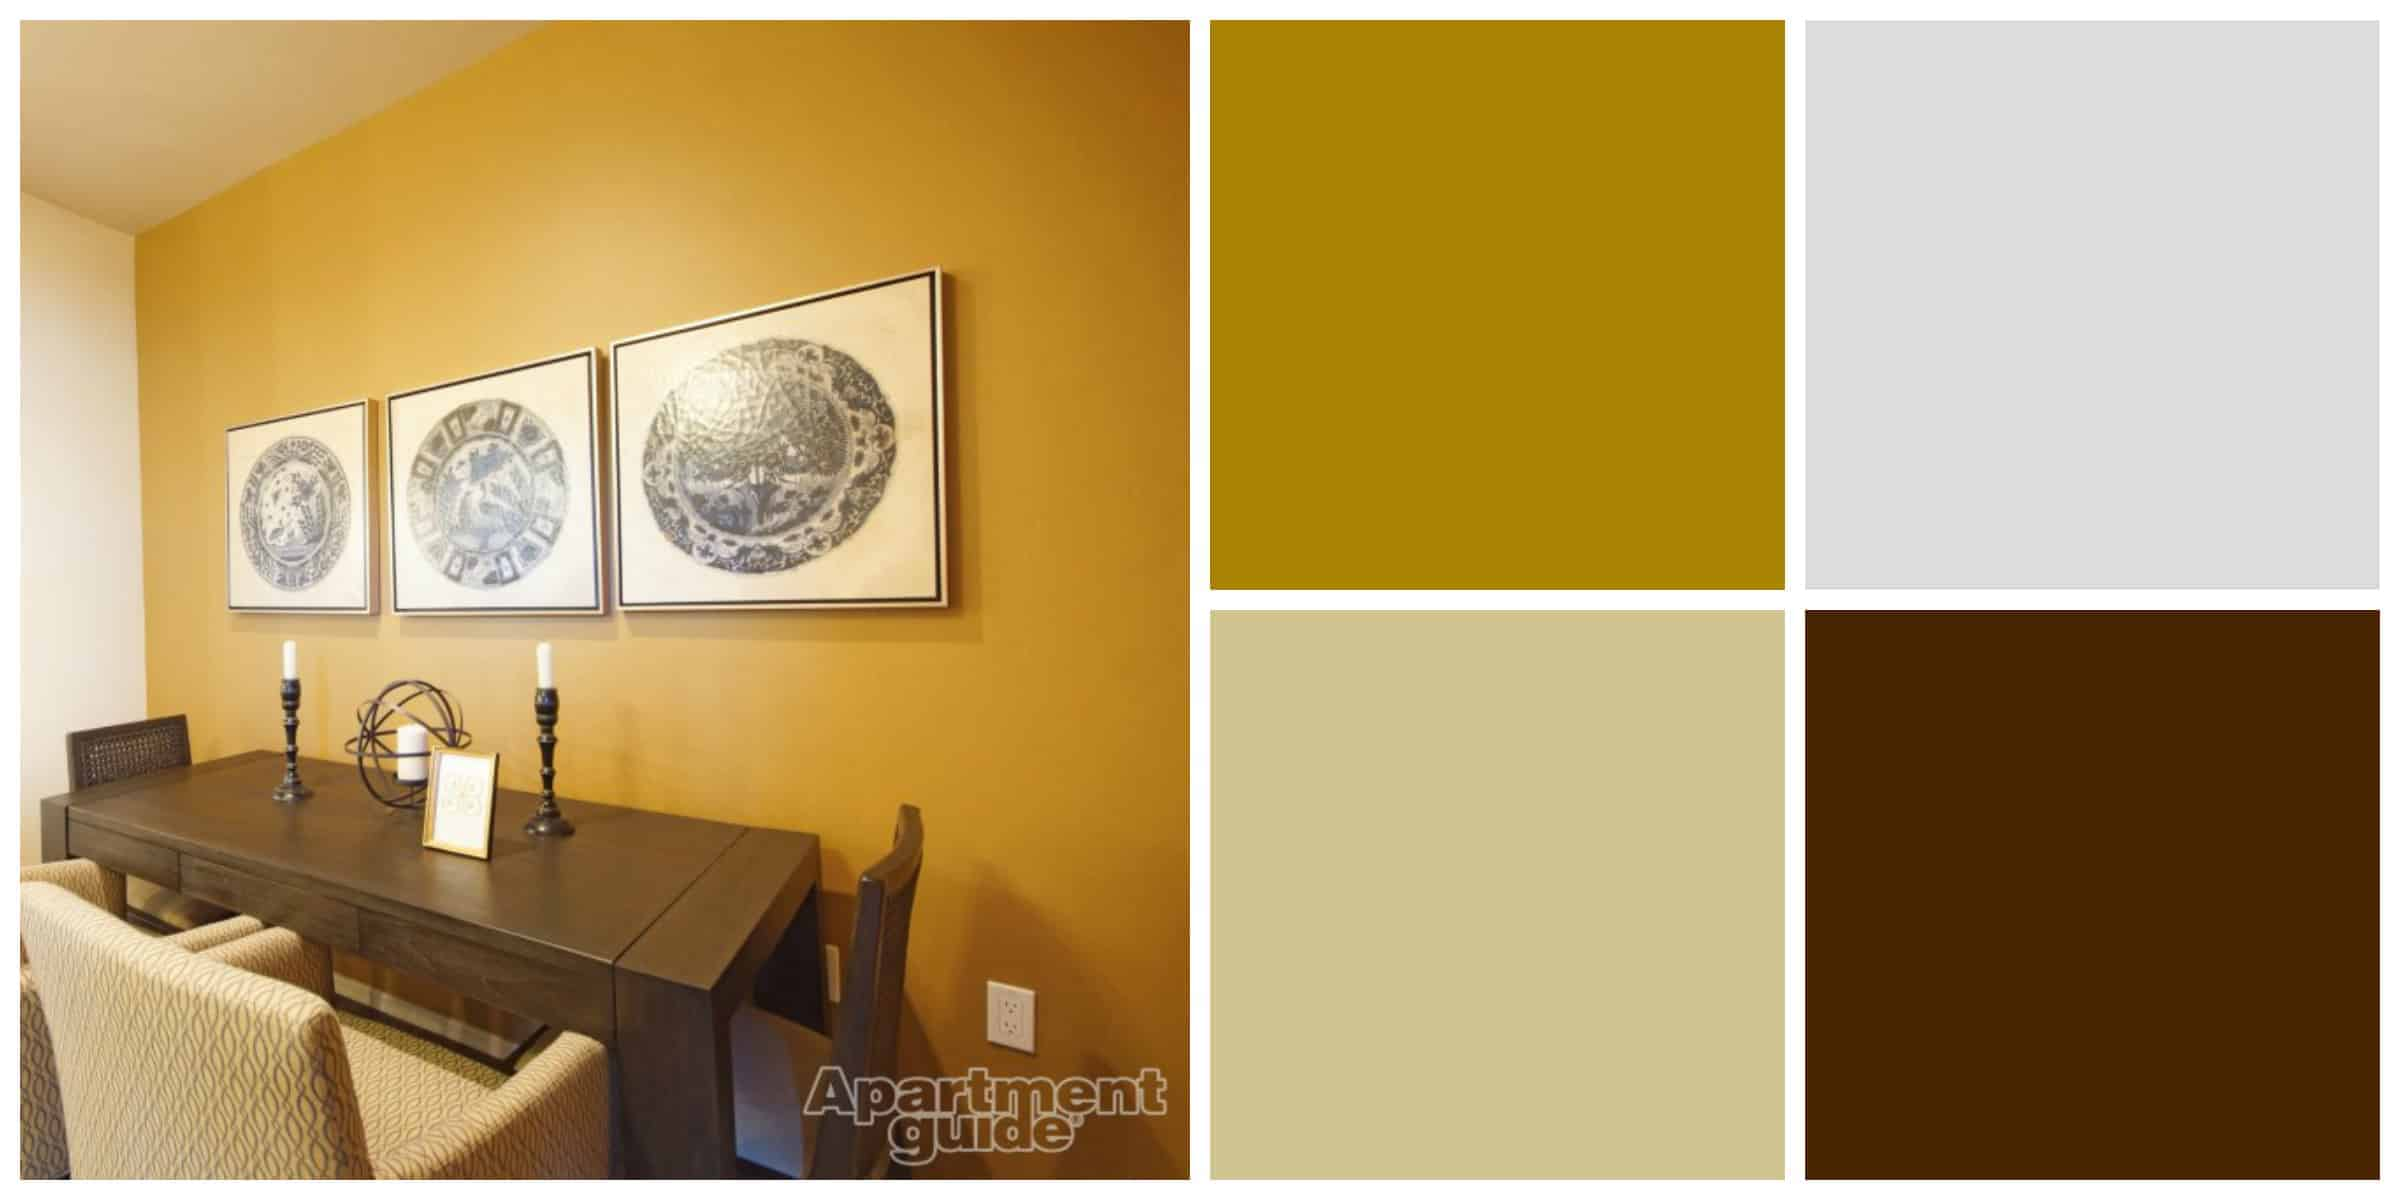 8 Easy Breezy Earth Tone Palettes for Your Apartment  : palette5 from www.apartmentguide.com size 2400 x 1200 jpeg 564kB